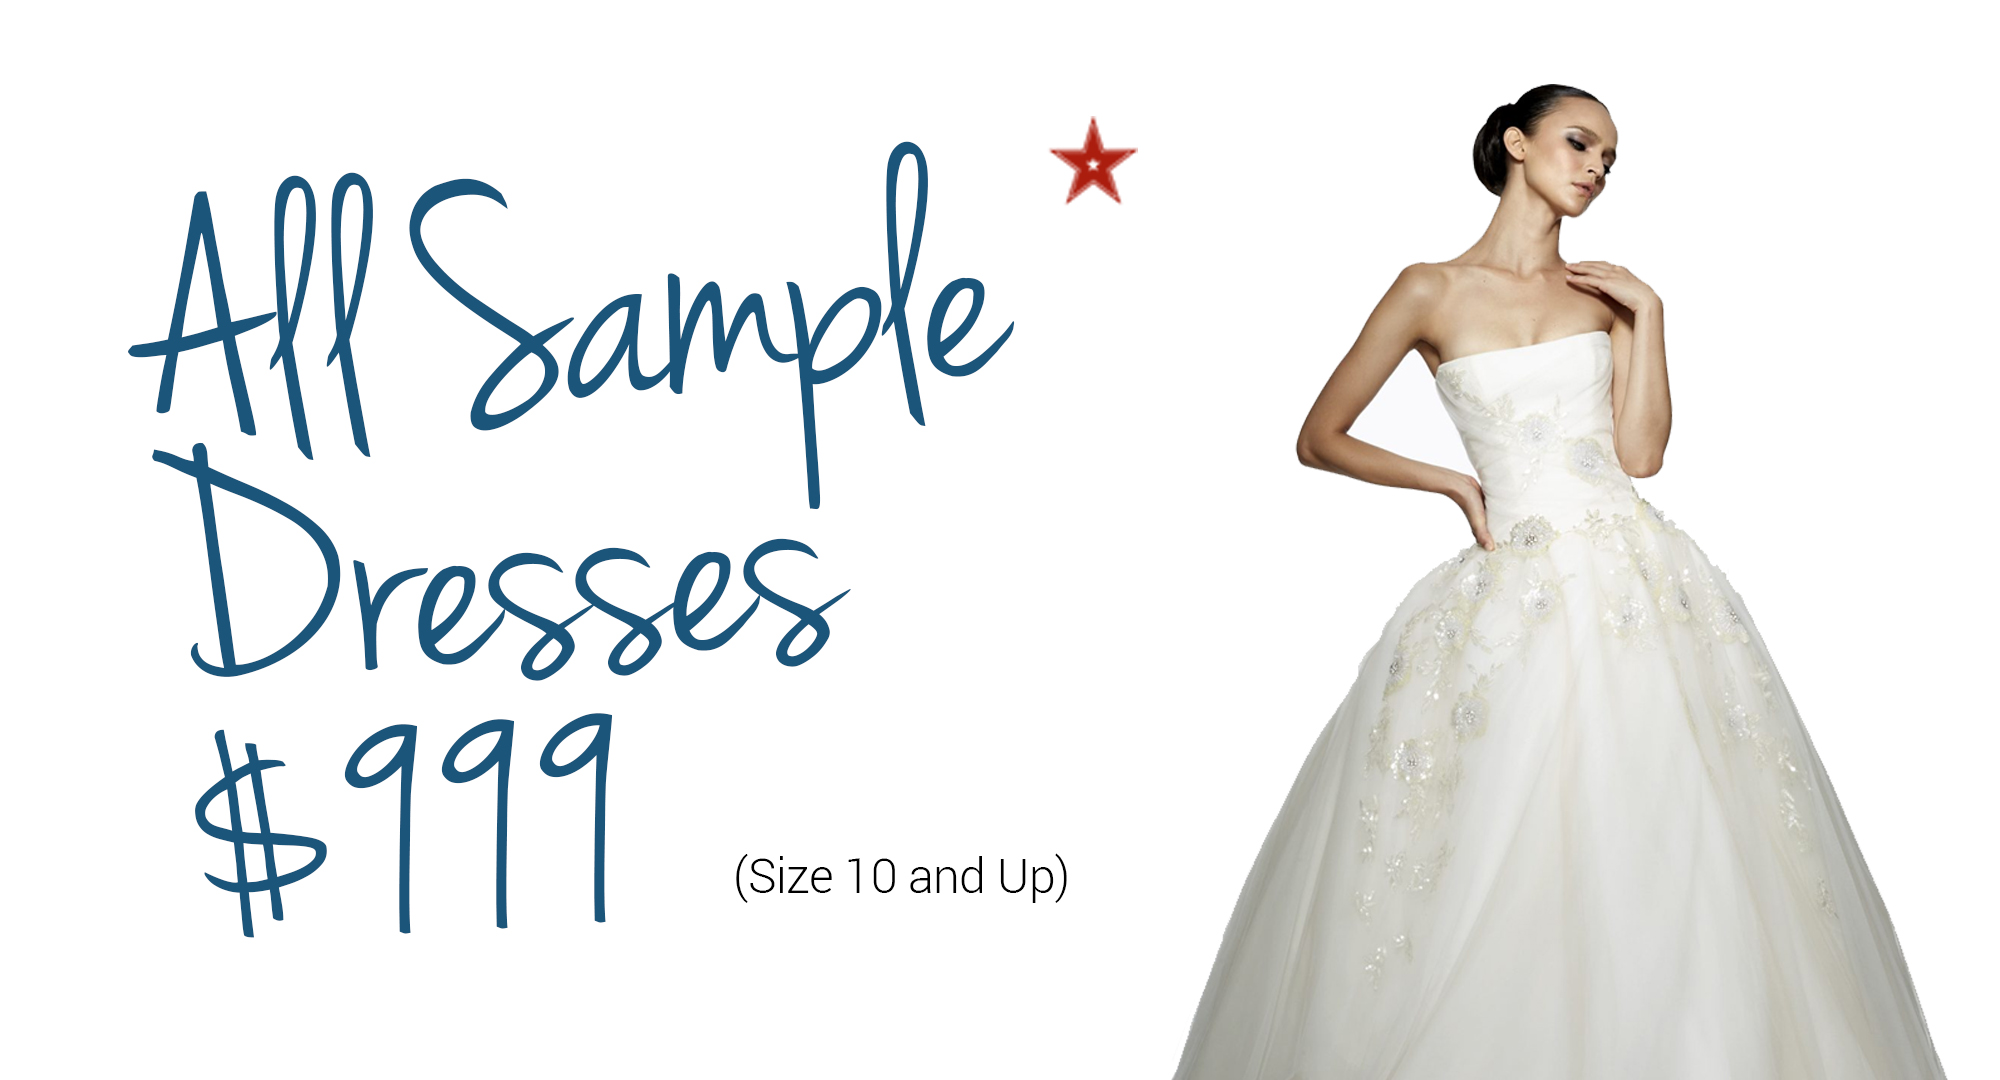 sample sale dresses $999